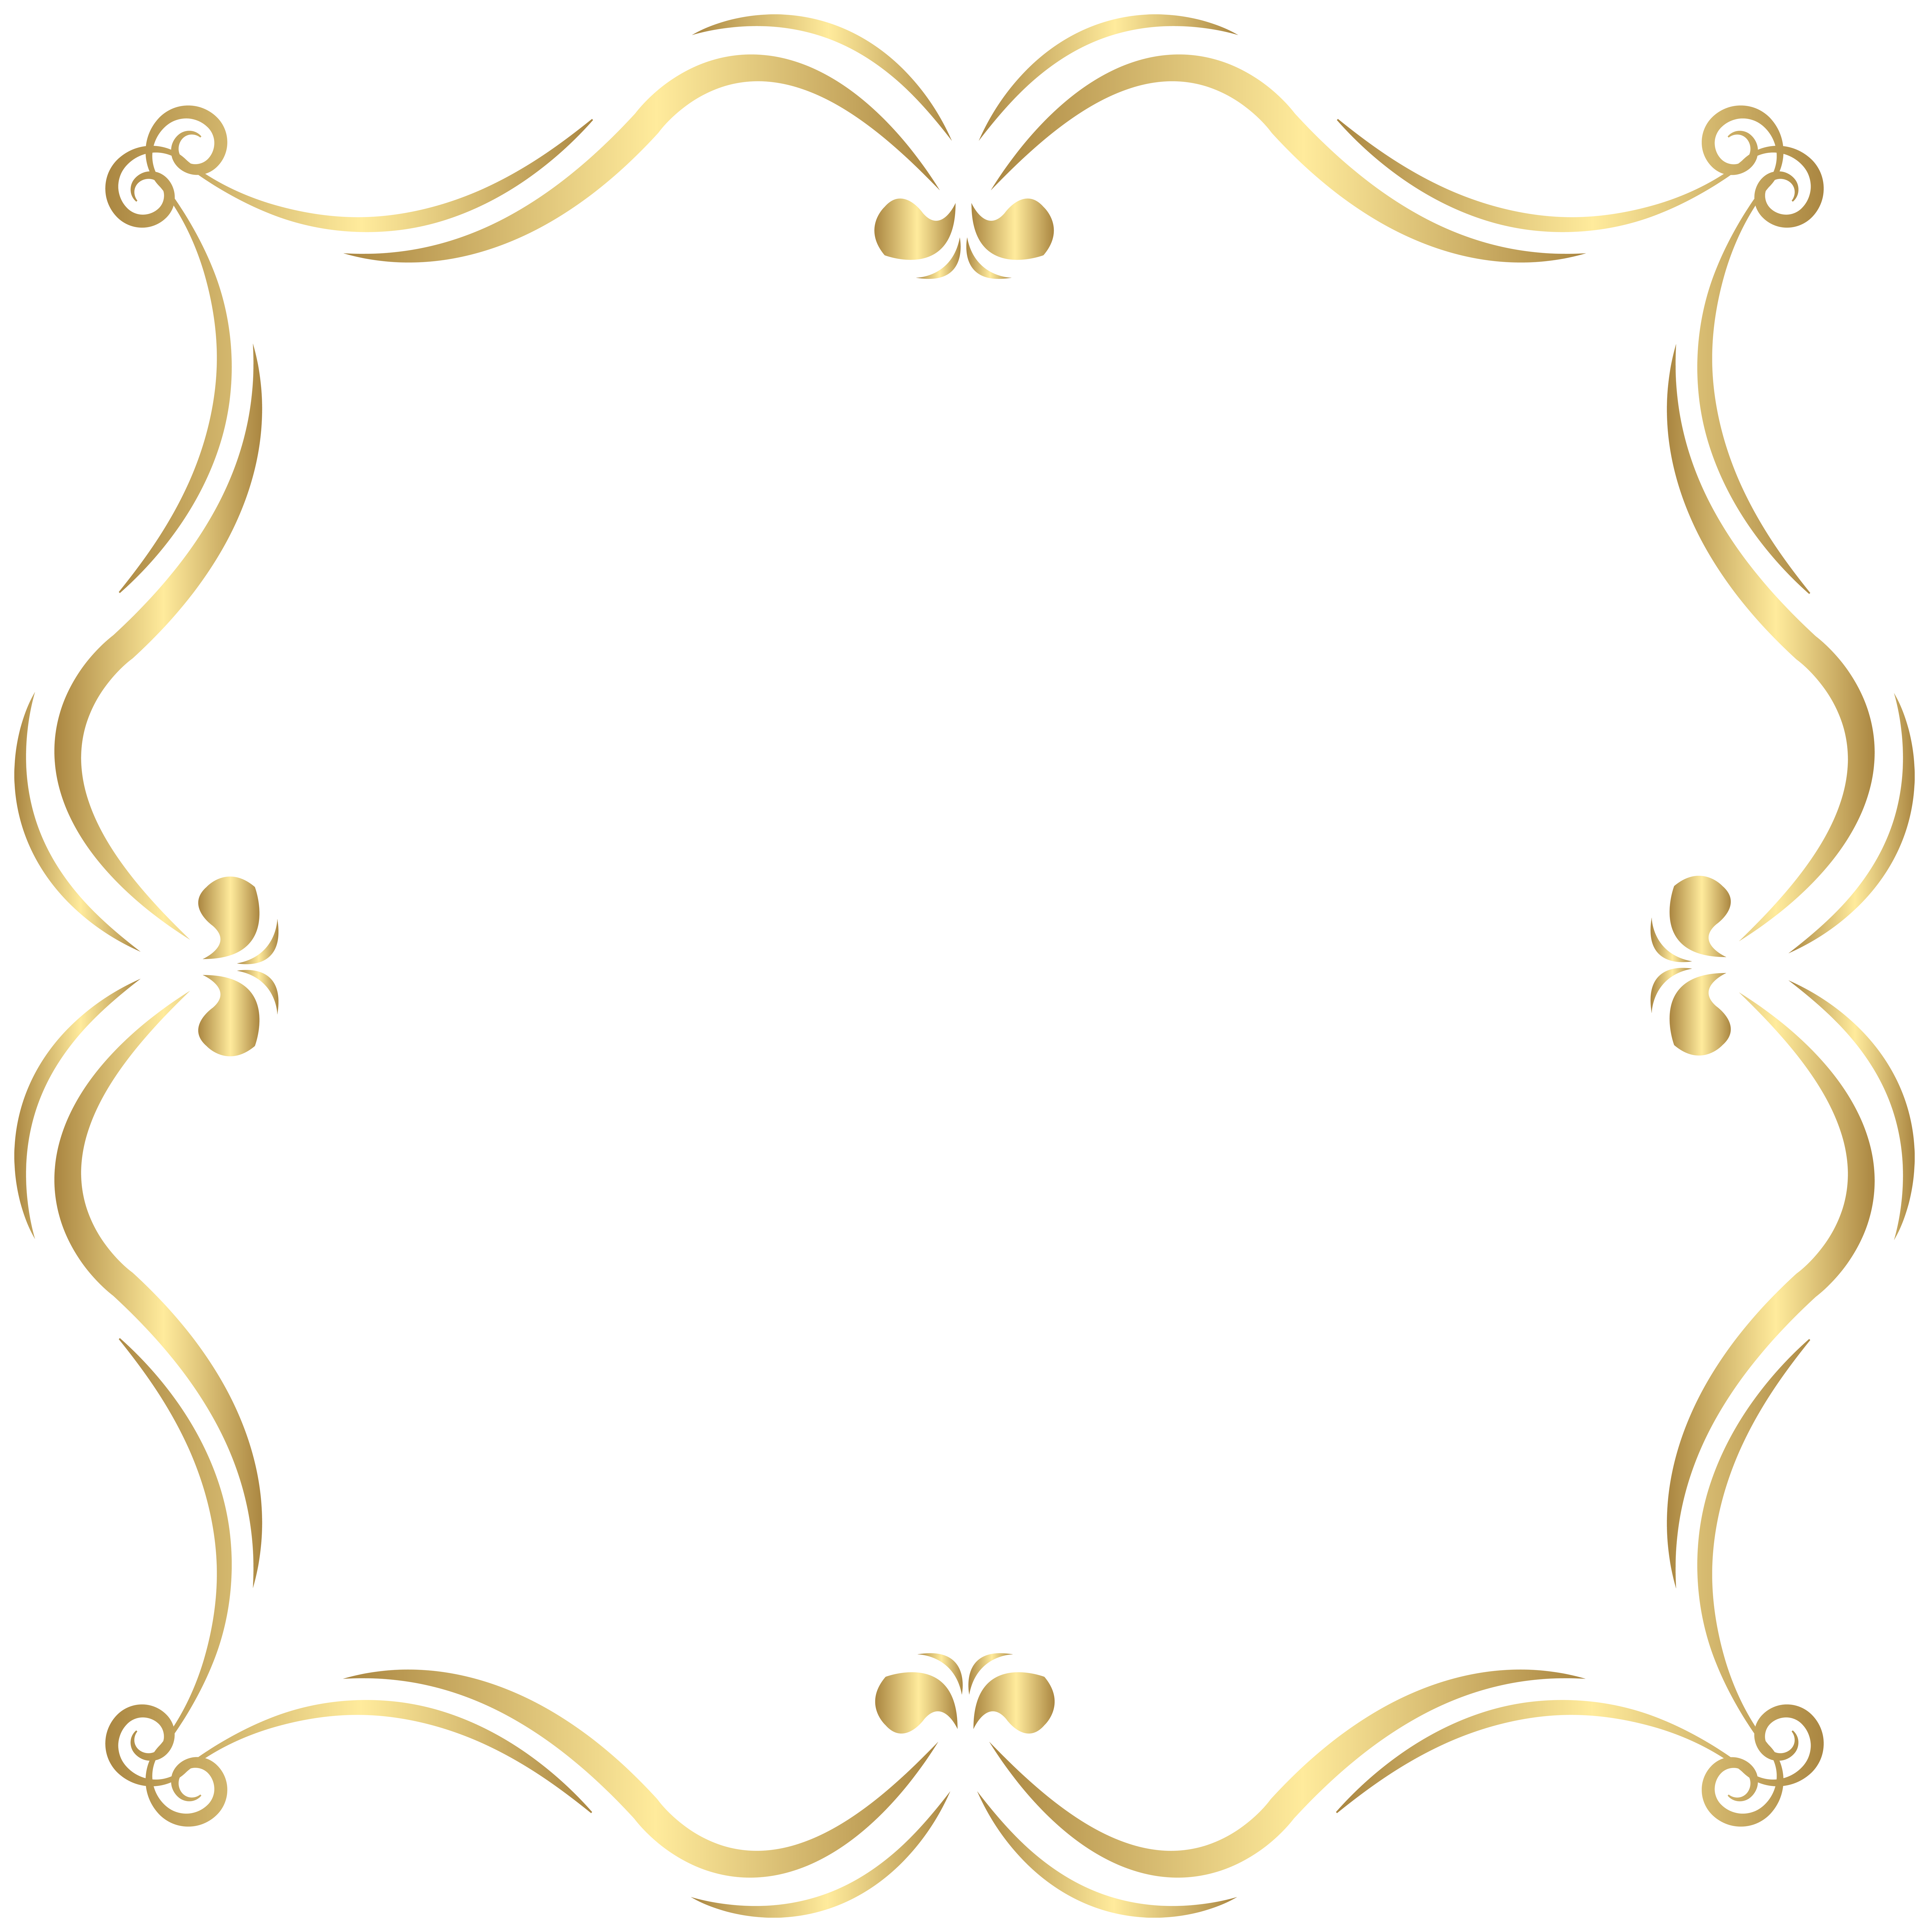 Gold border clipart image library download Gold Border PNG Clip Art Image | Gallery Yopriceville - High ... image library download